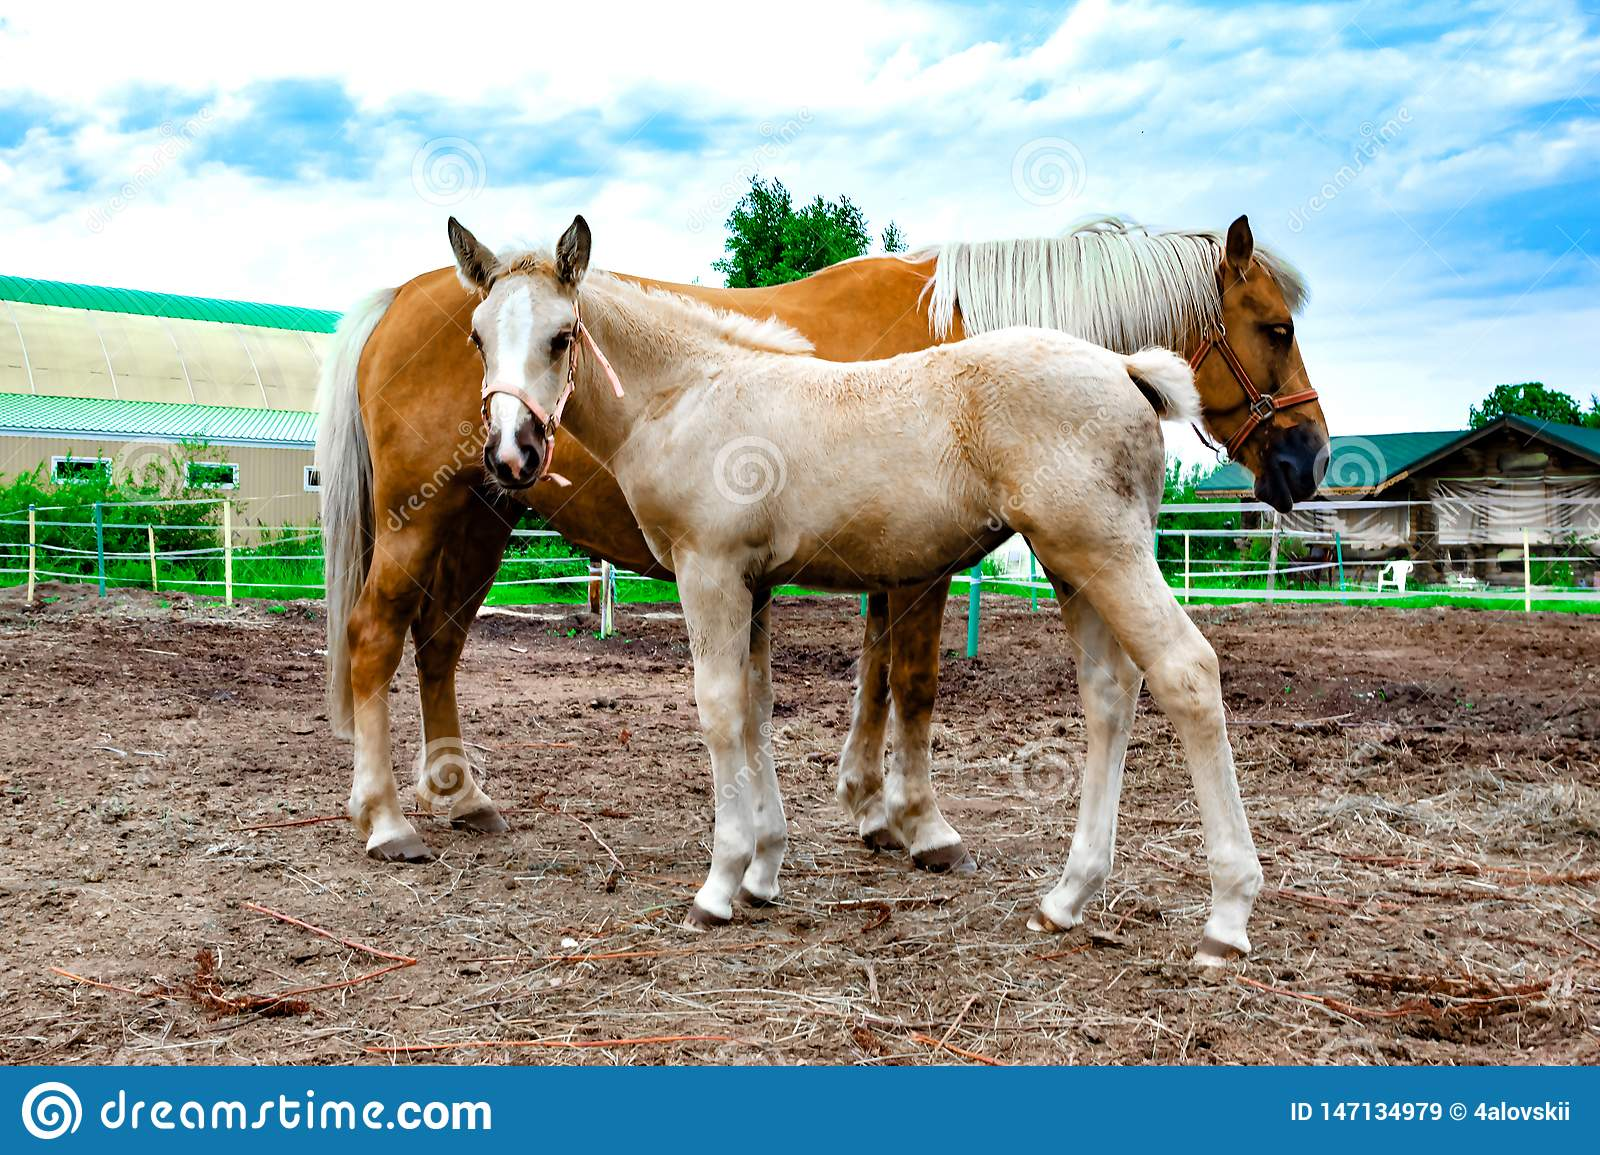 Red horse with a young foal grazing. Stable